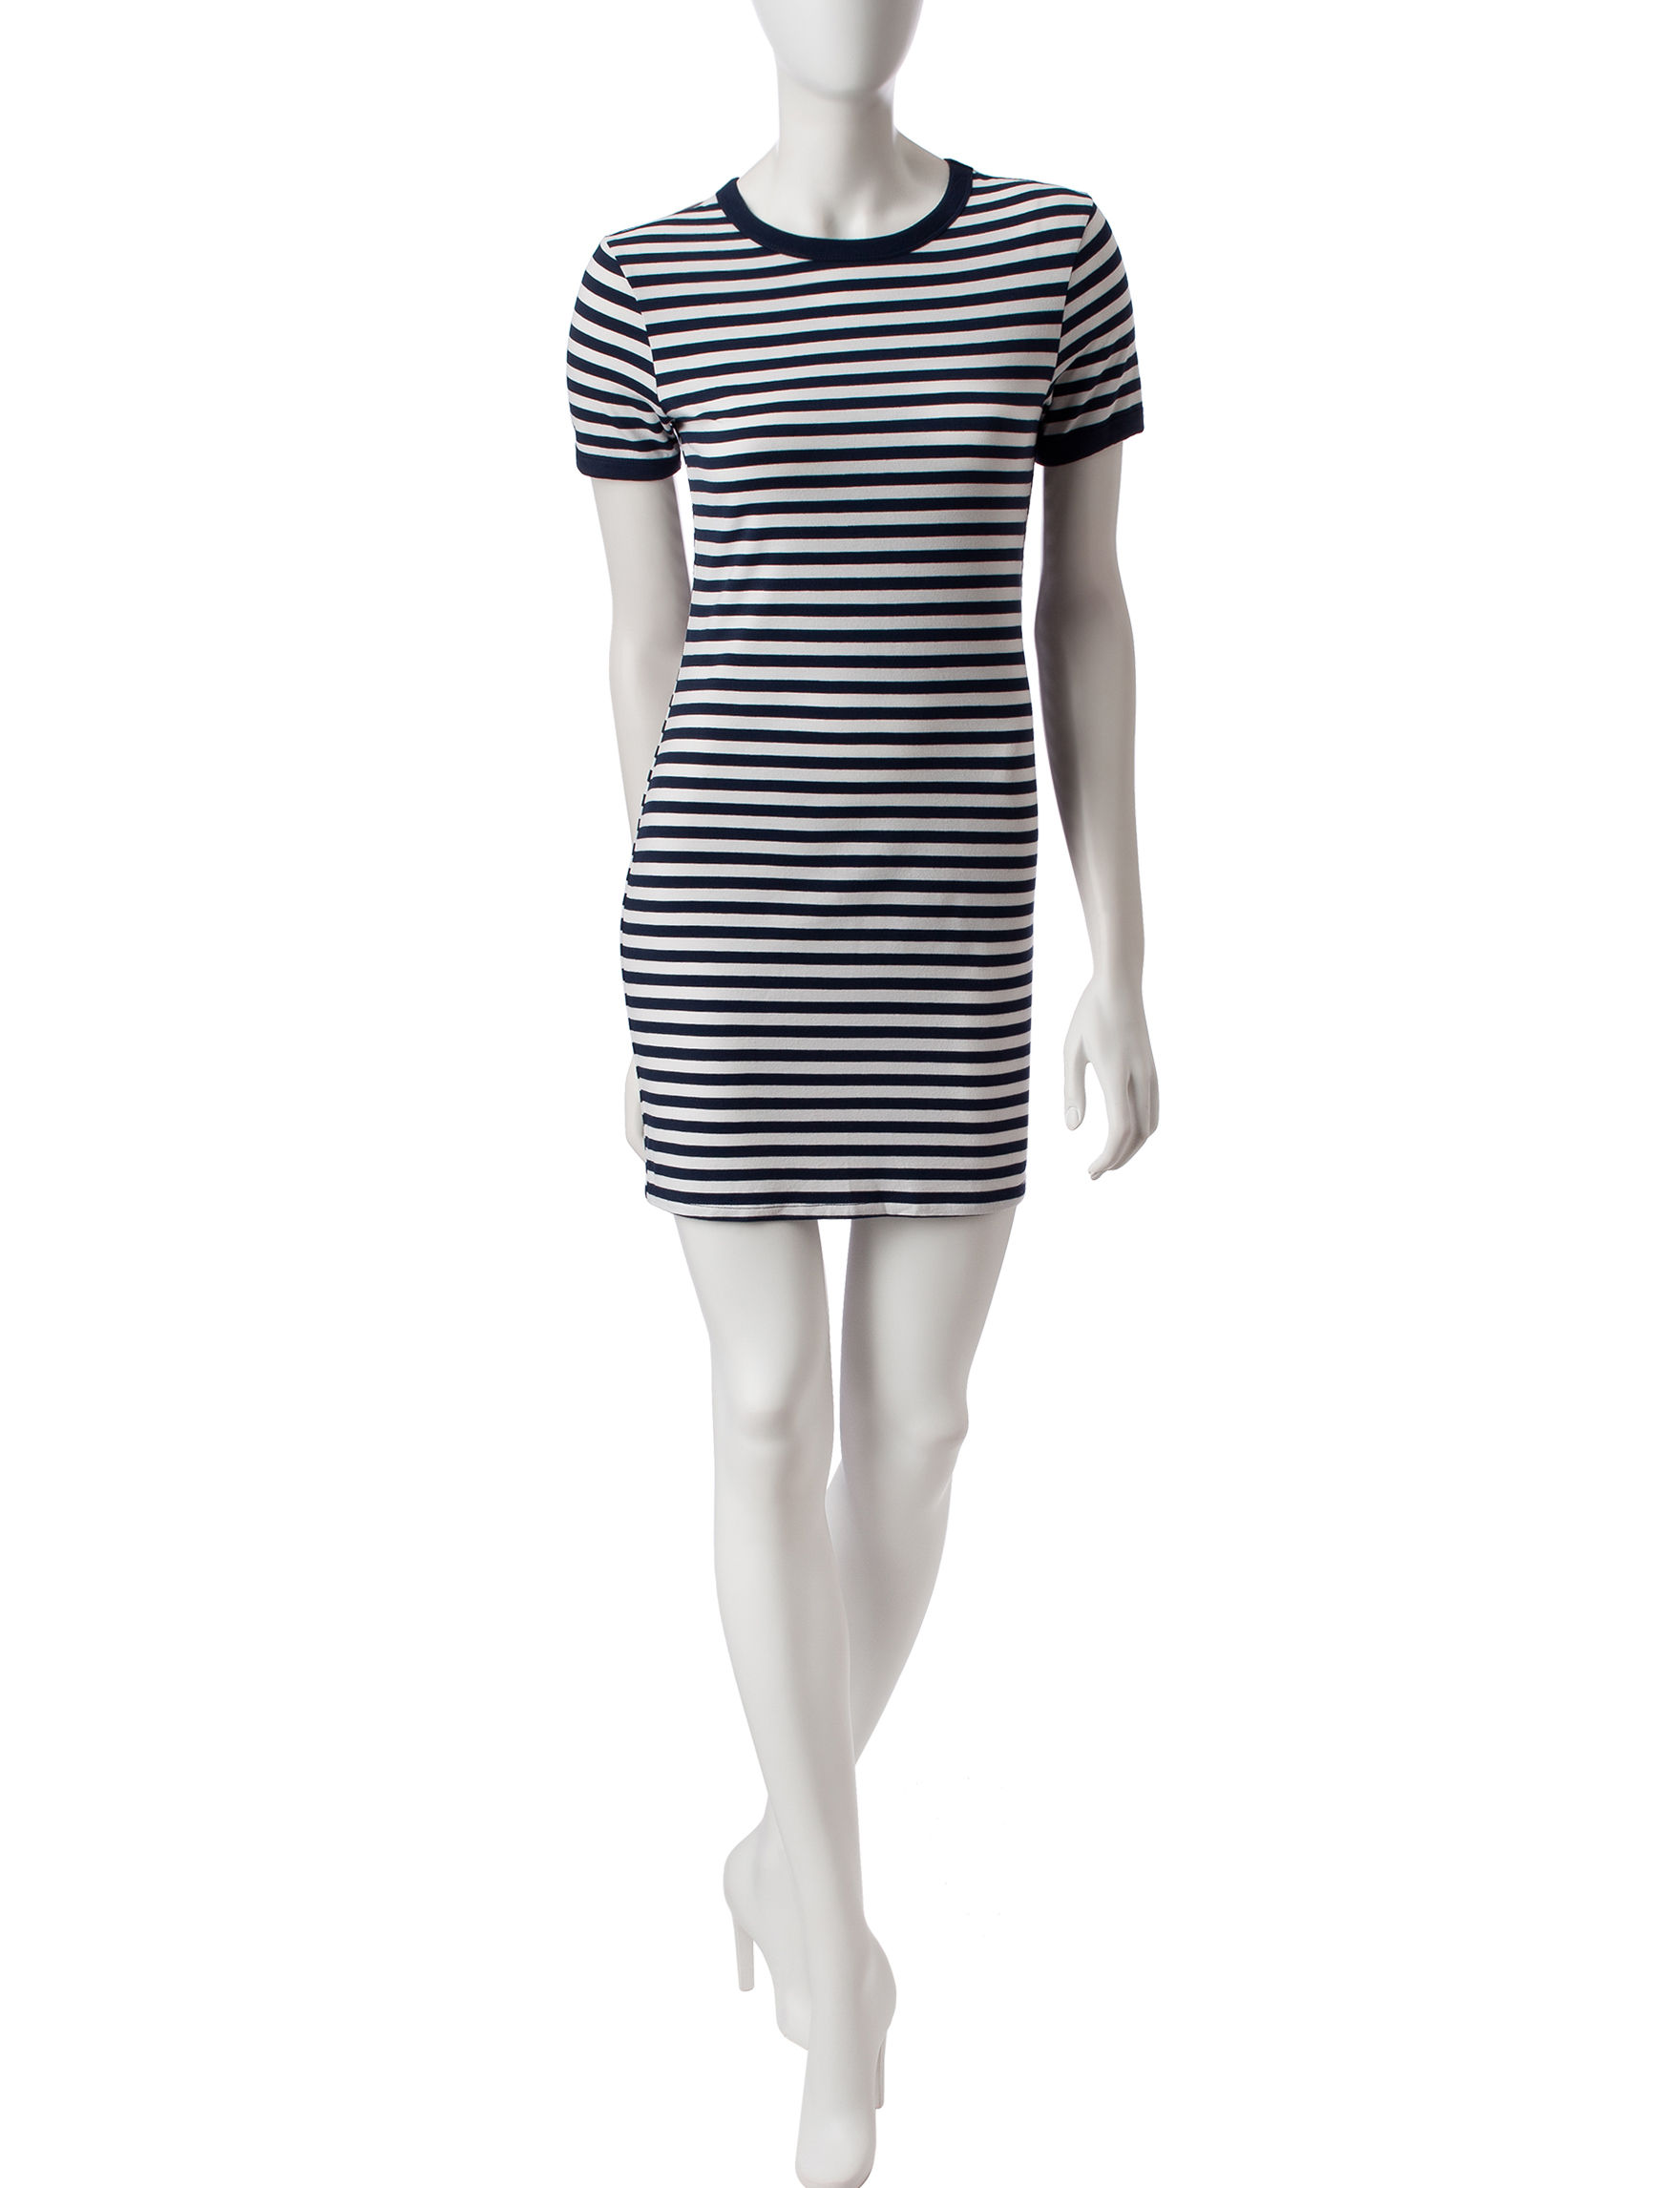 Wishful Park Navy Stripe Everyday & Casual Shirt Dresses